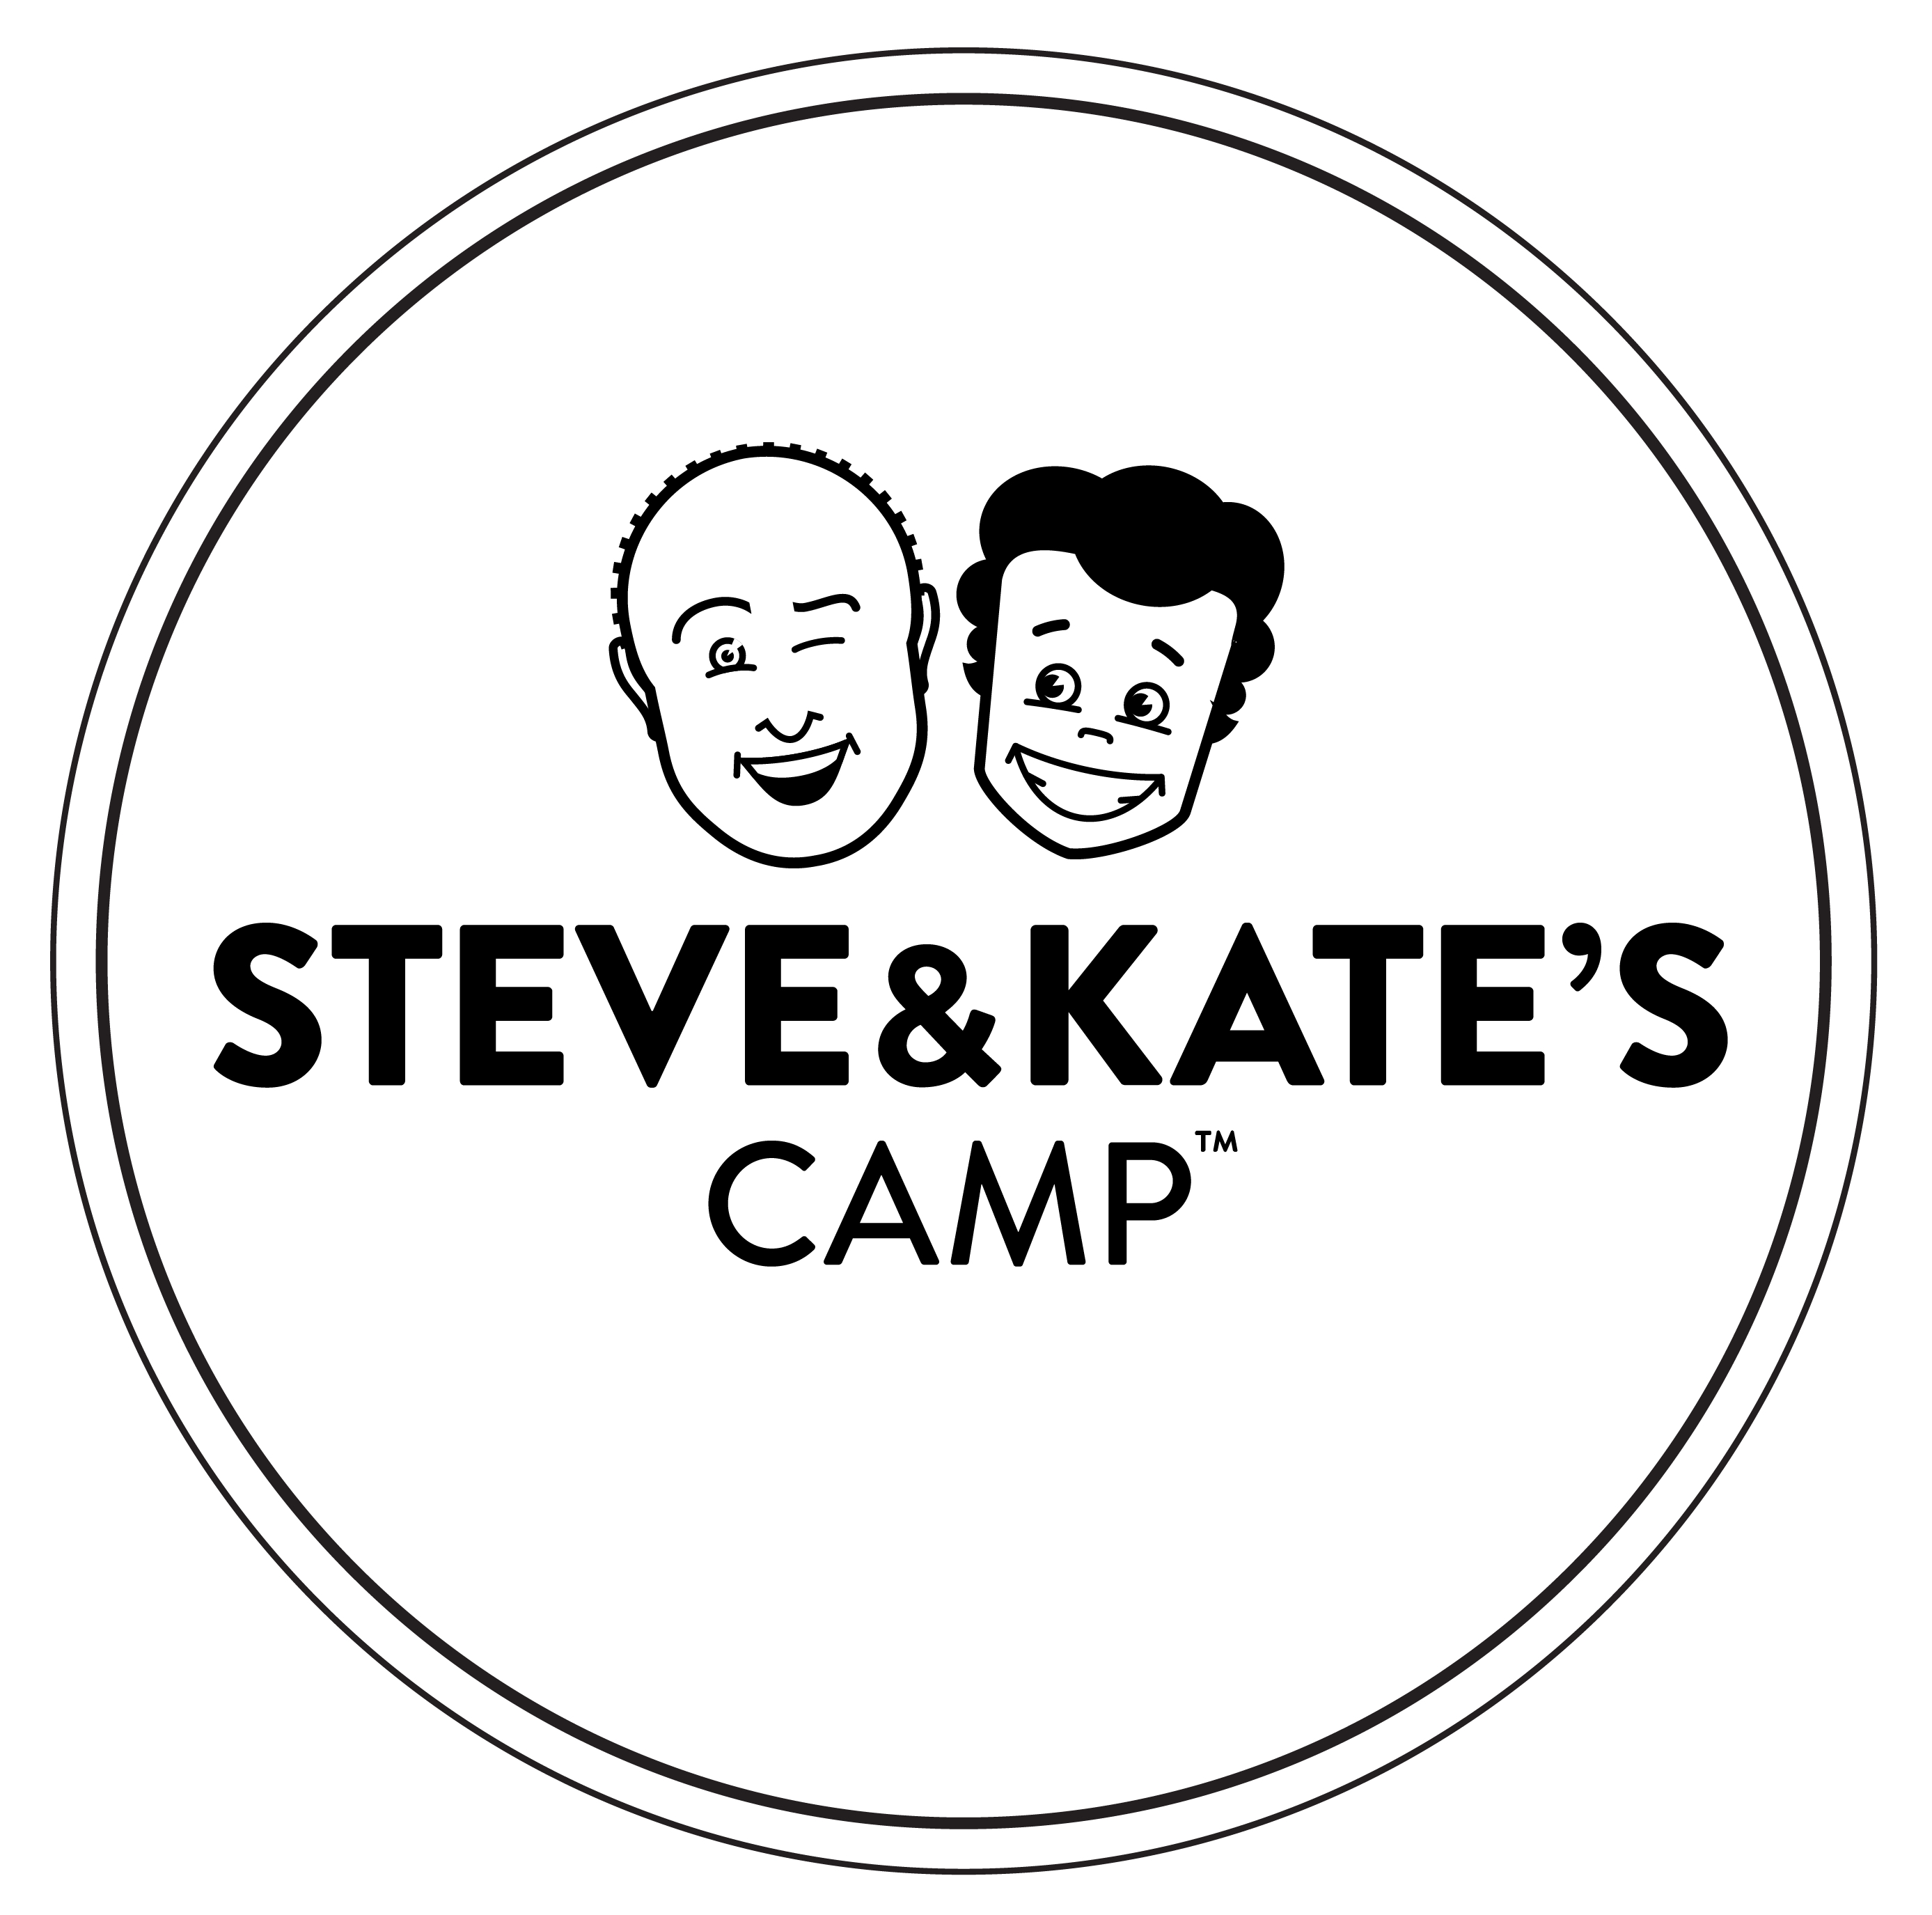 Steve & Kate's Camp logo